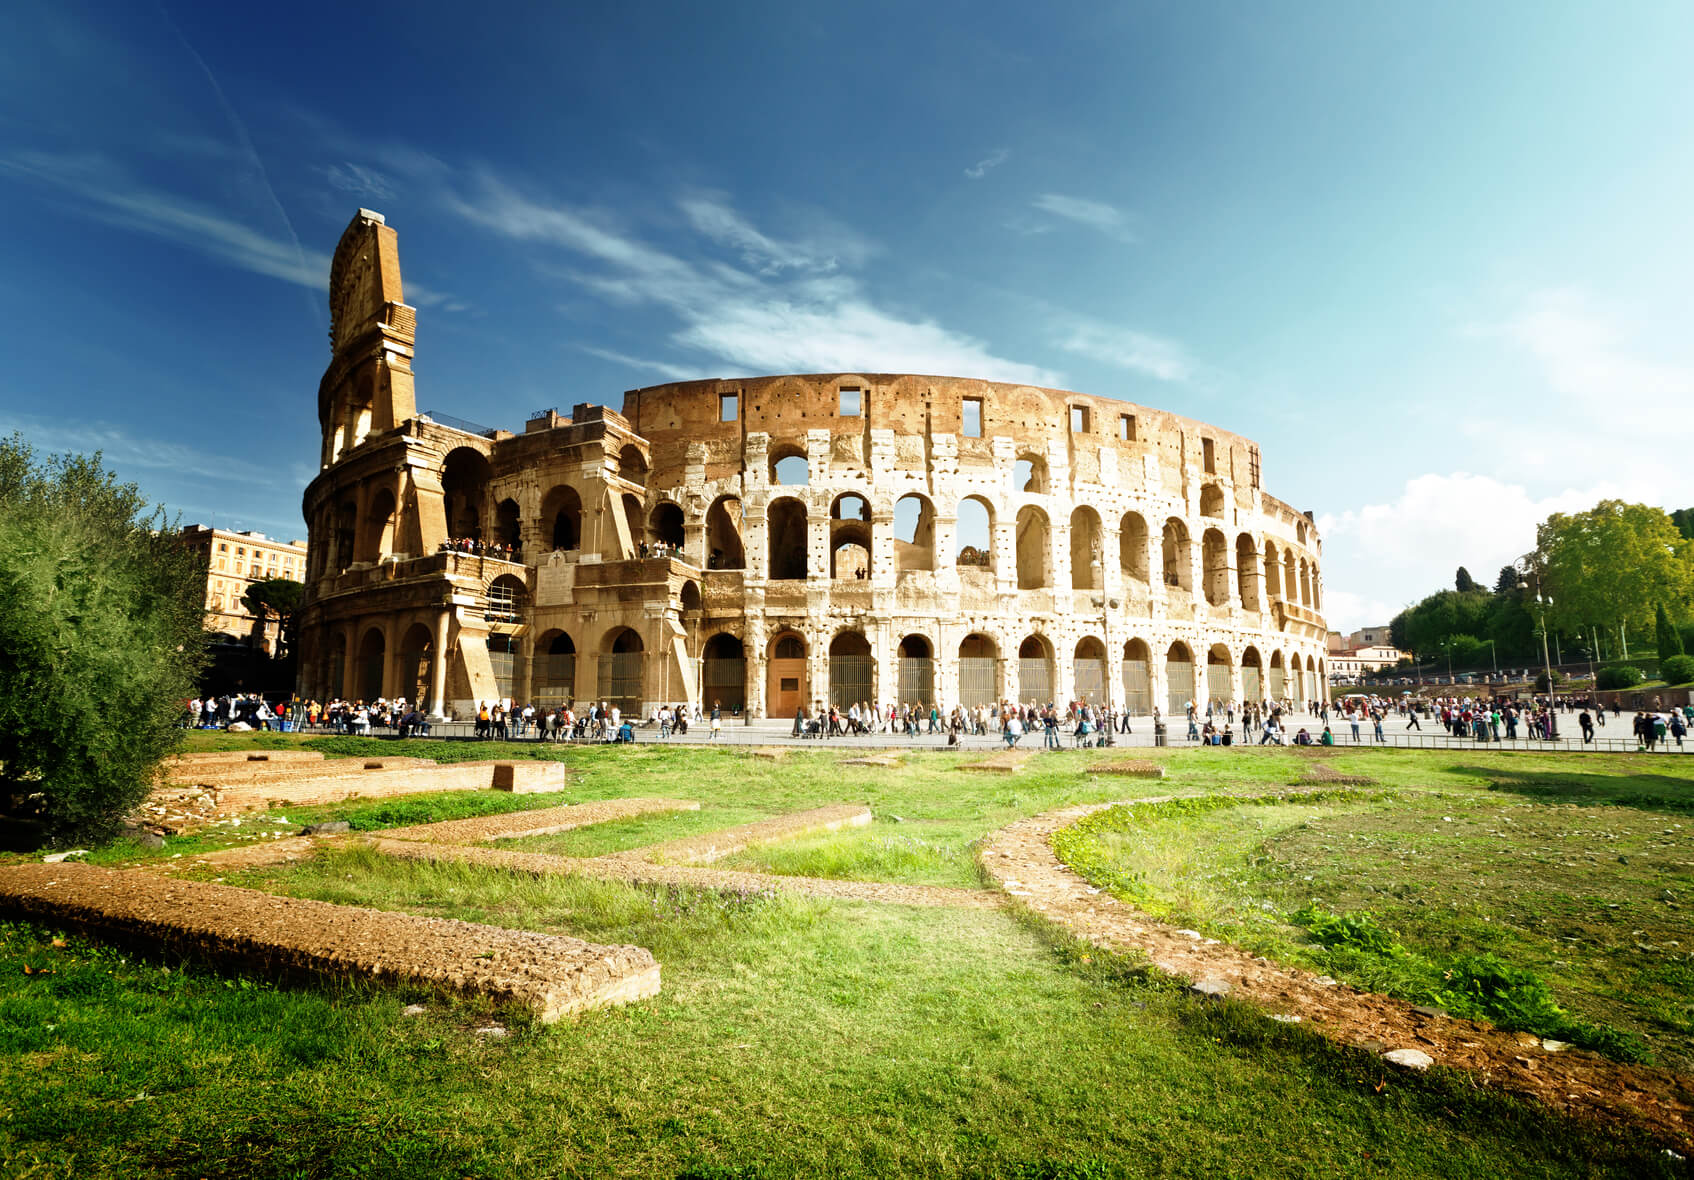 New York to Rome, Italy for only $384 roundtrip